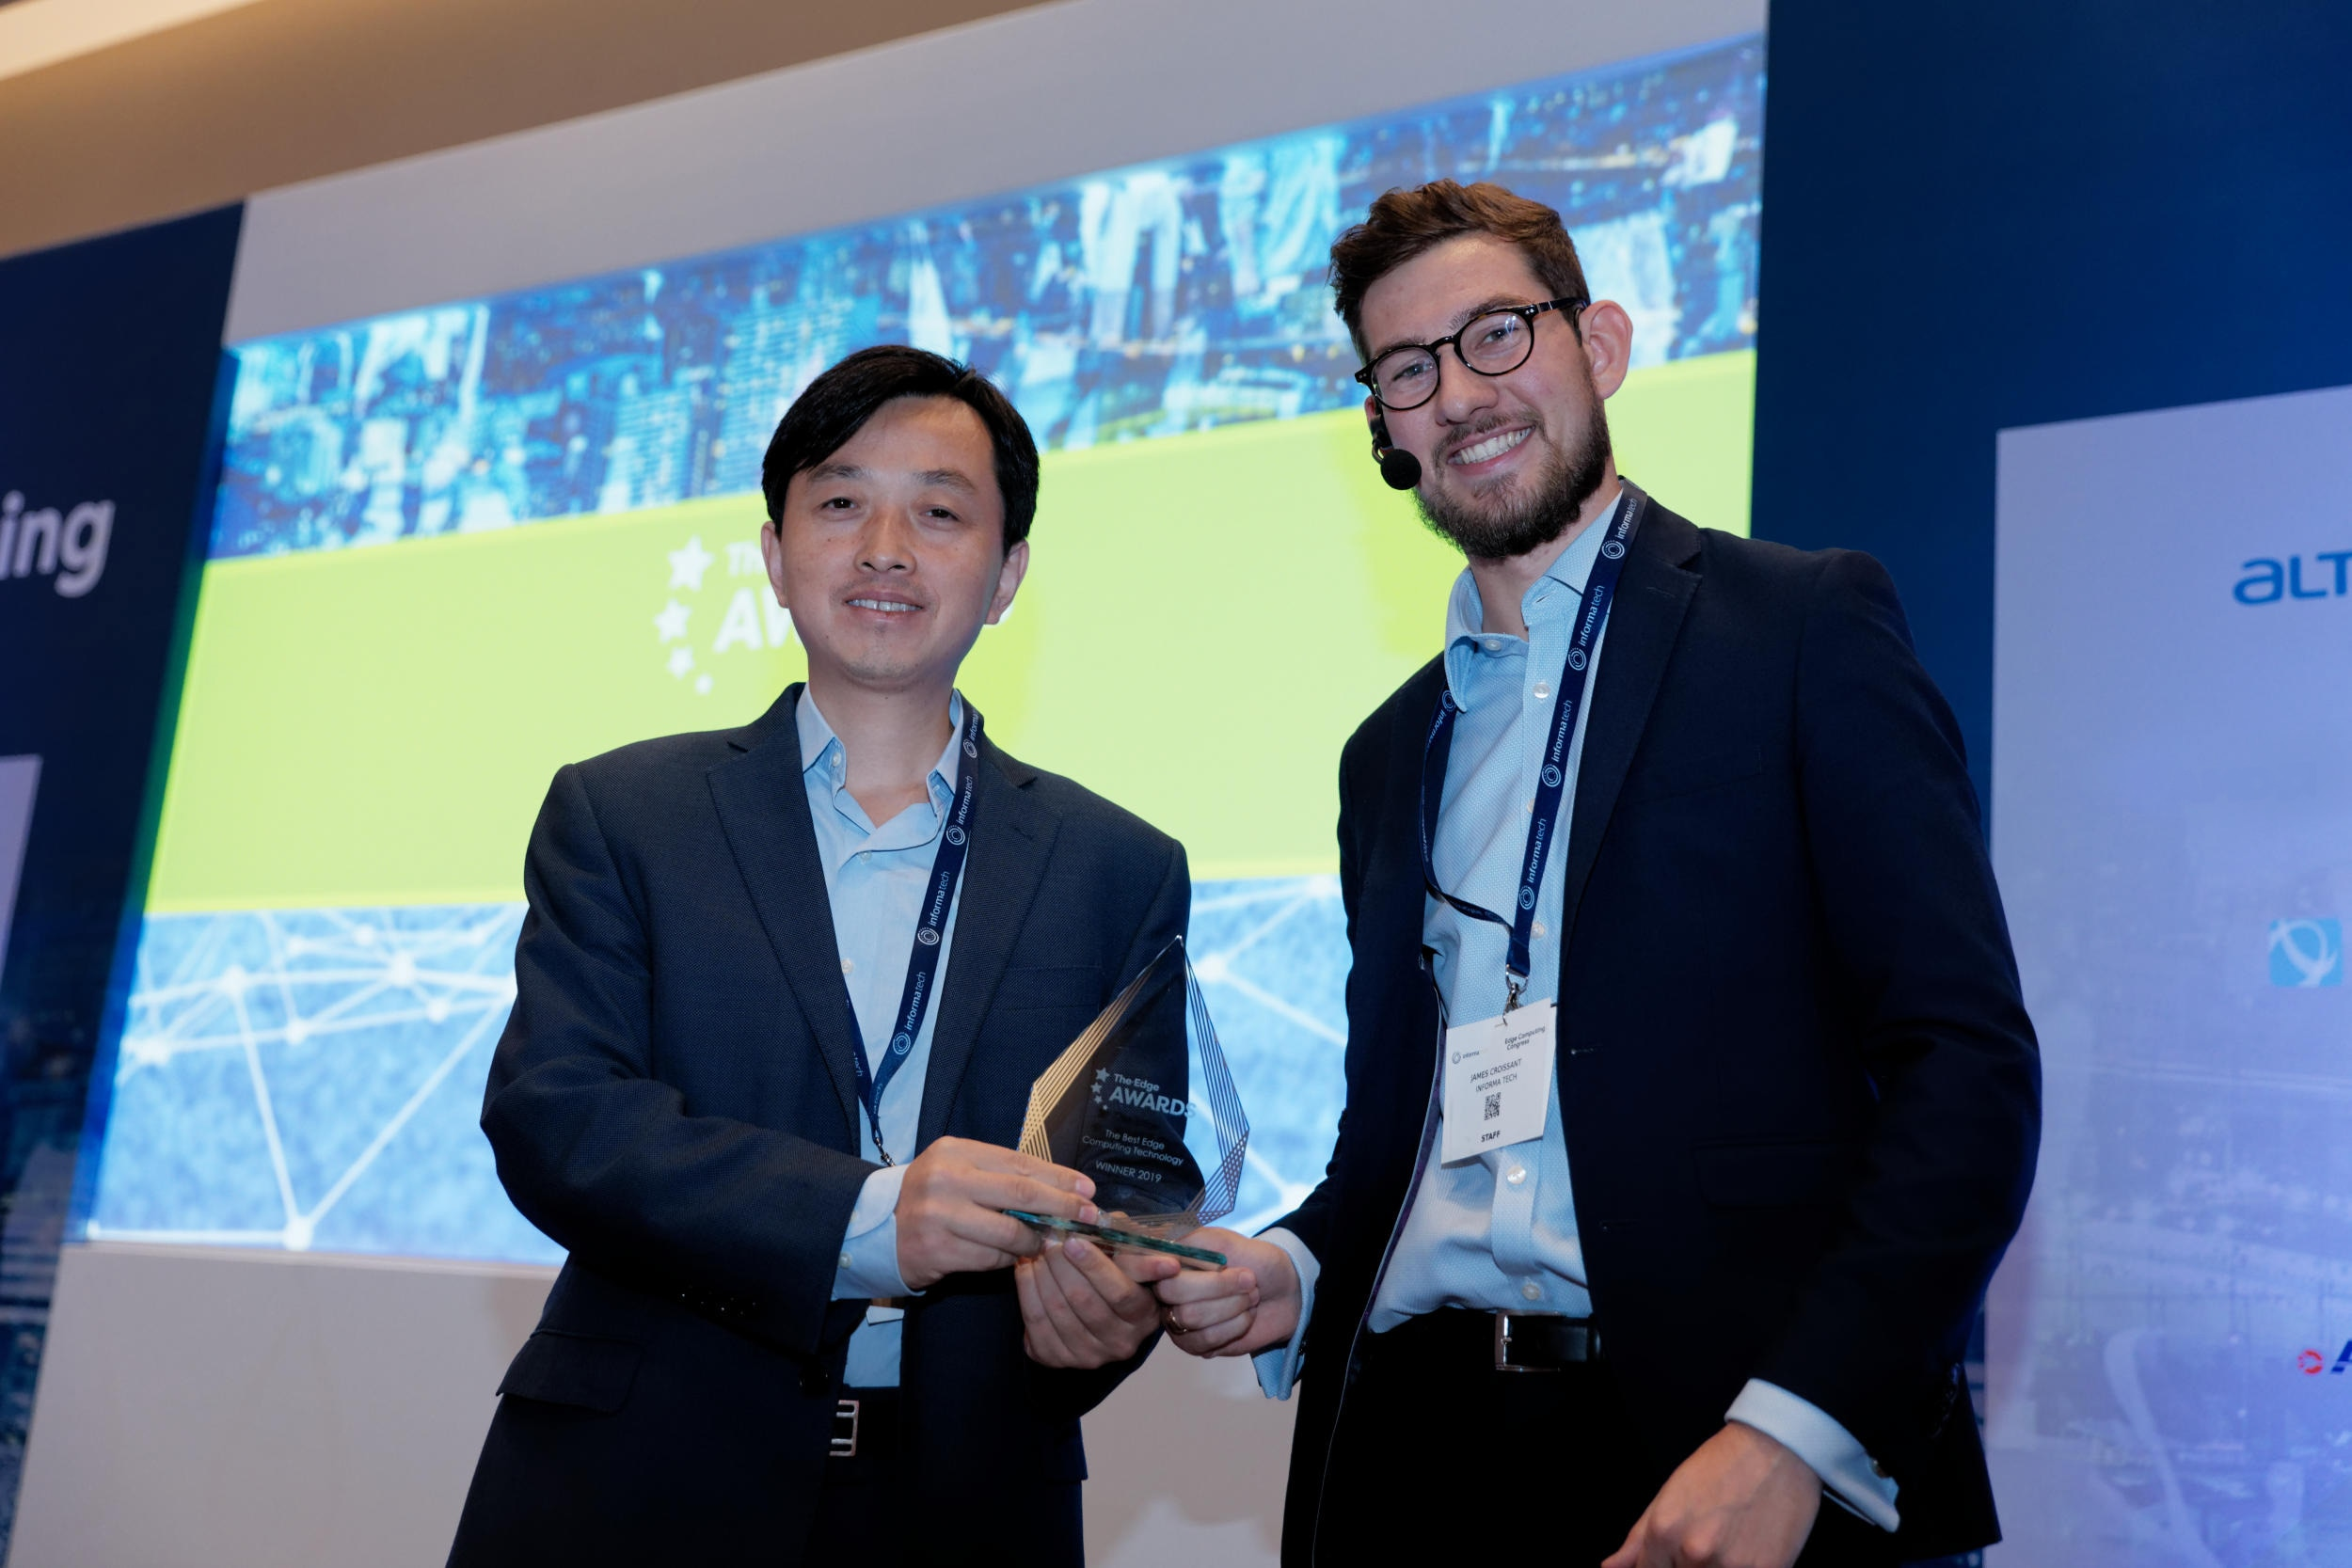 Huawei 5G MEC Solution Won the Best Edge Computing Technology Award